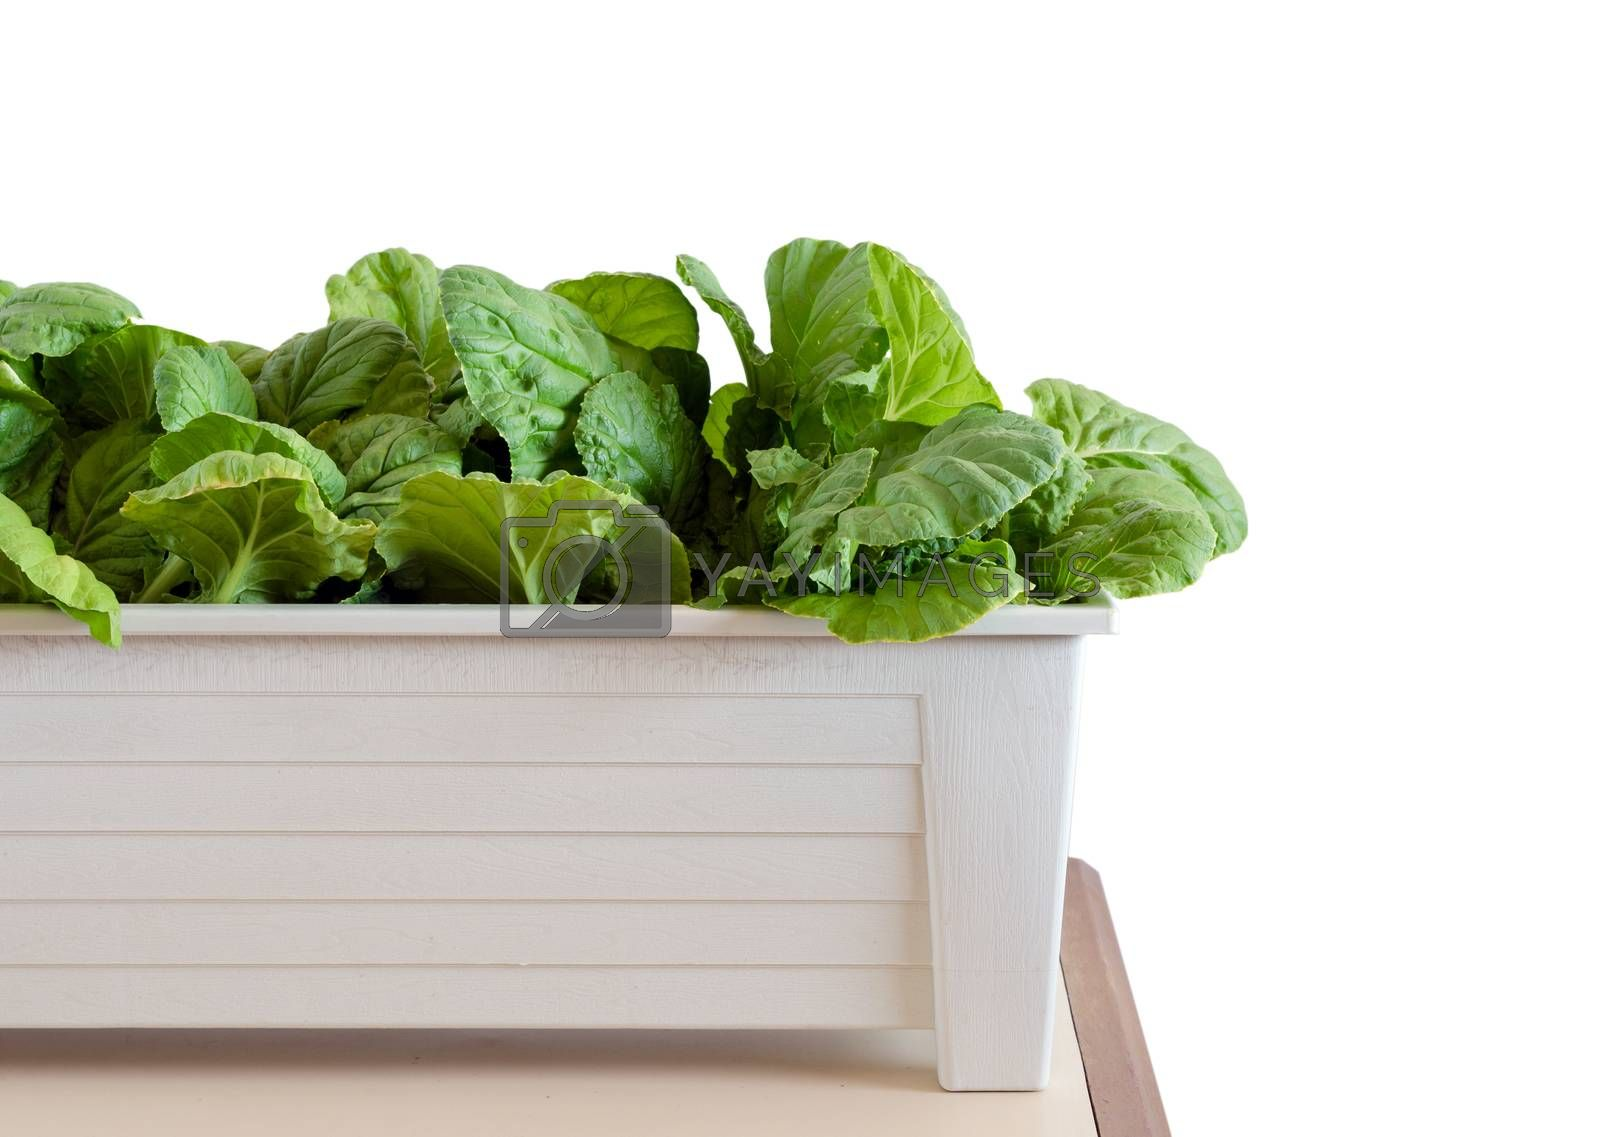 Hydroponic vegetables growing in pot on white background by siraanamwong